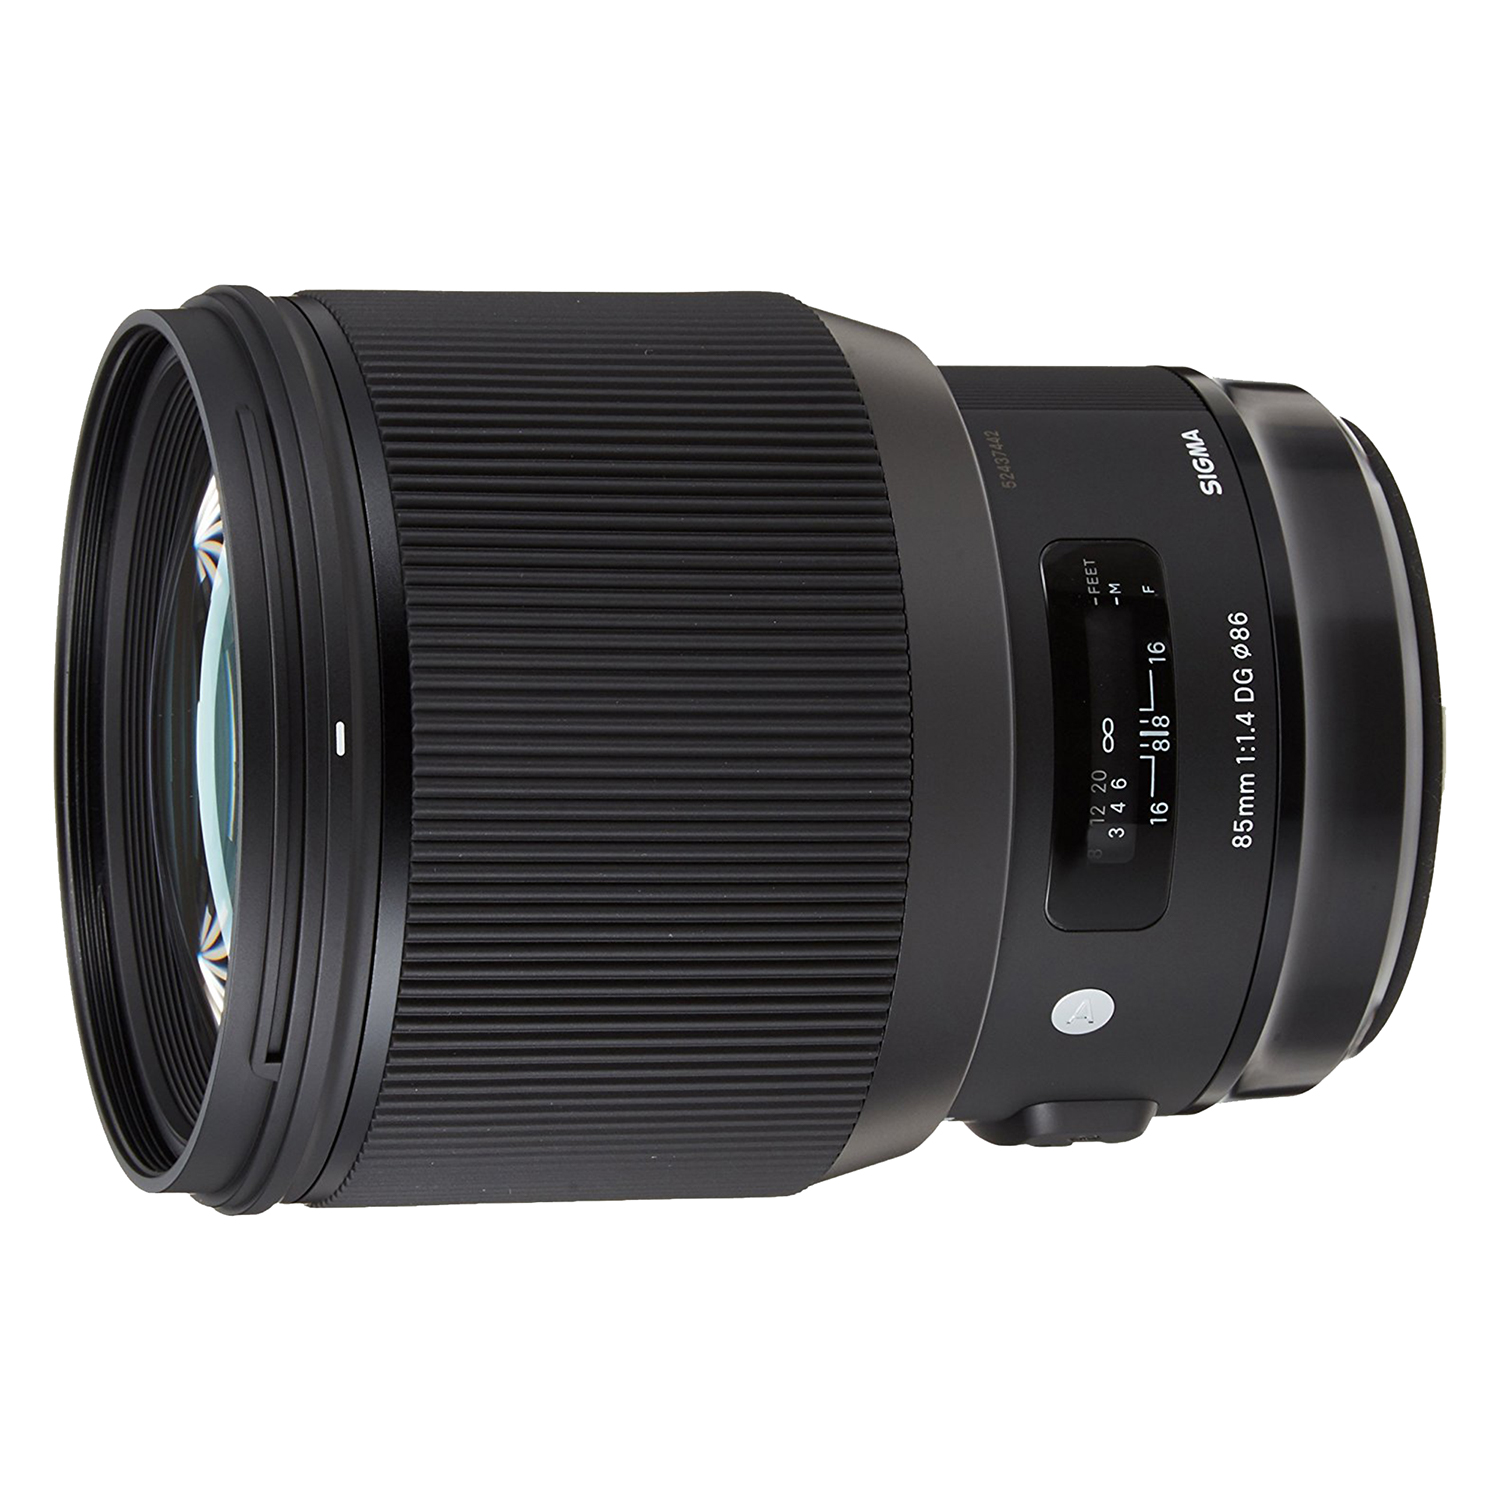 Sigma 85mm f1.4 DG HSM Art Lens -